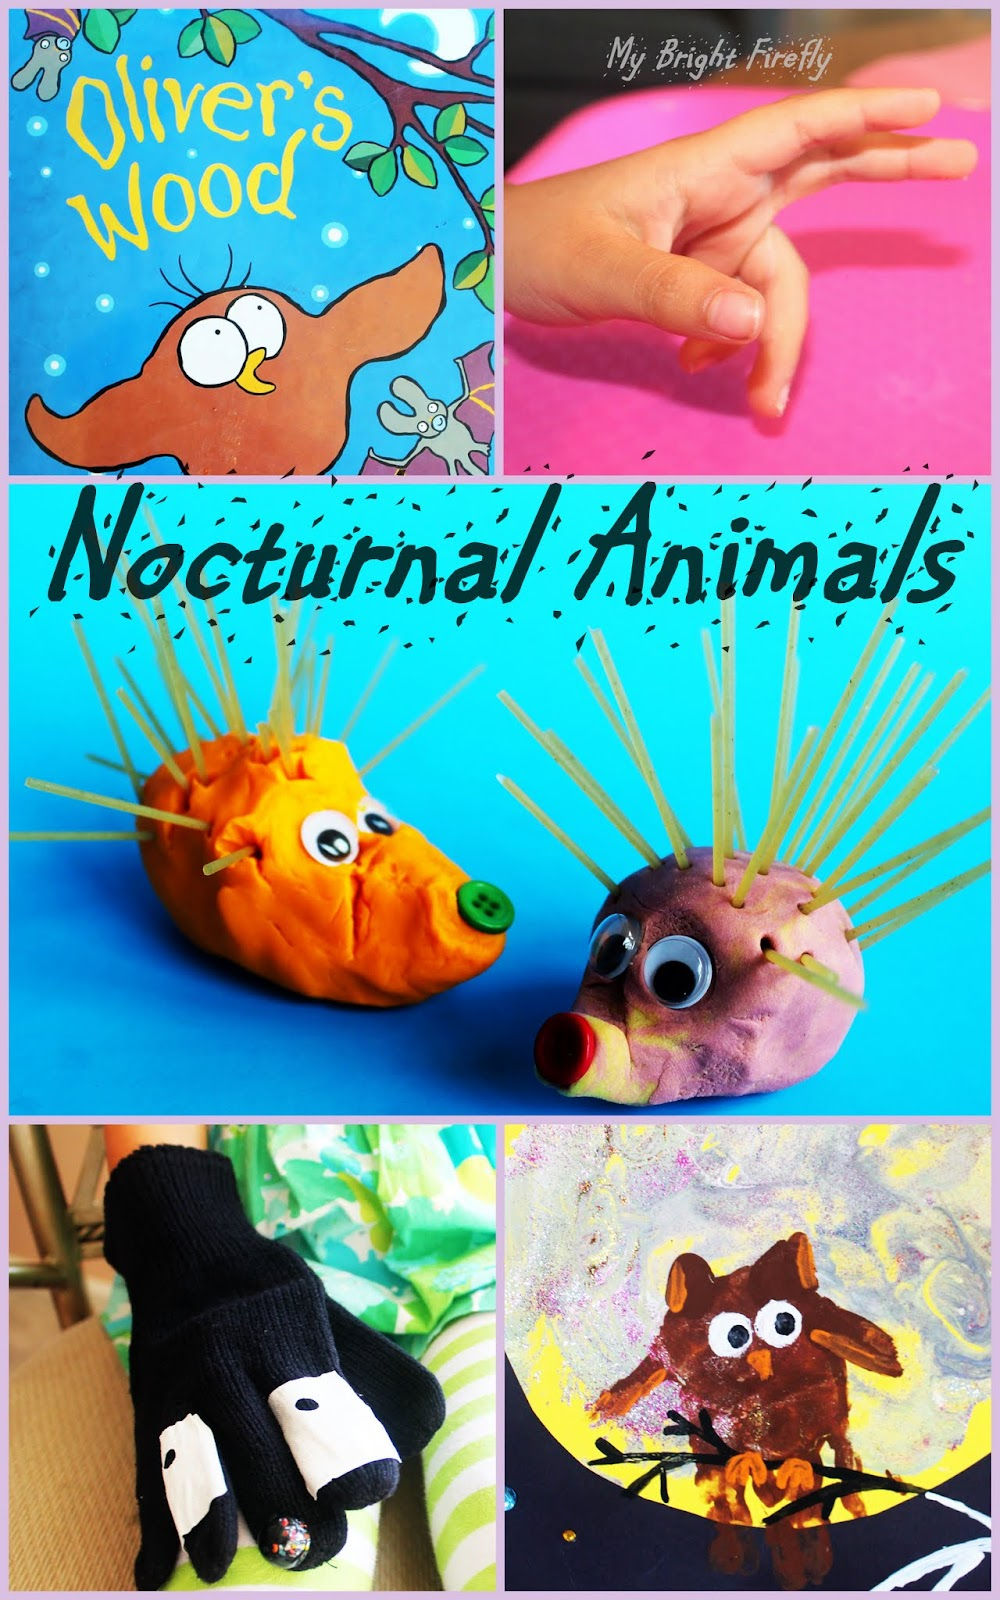 Image of: Diurnal Owl Badger And Hedgehog Preschool Crafts Nocturnal Animals My Bright Firefly Nocturnal Animals Preschool Activities Owl